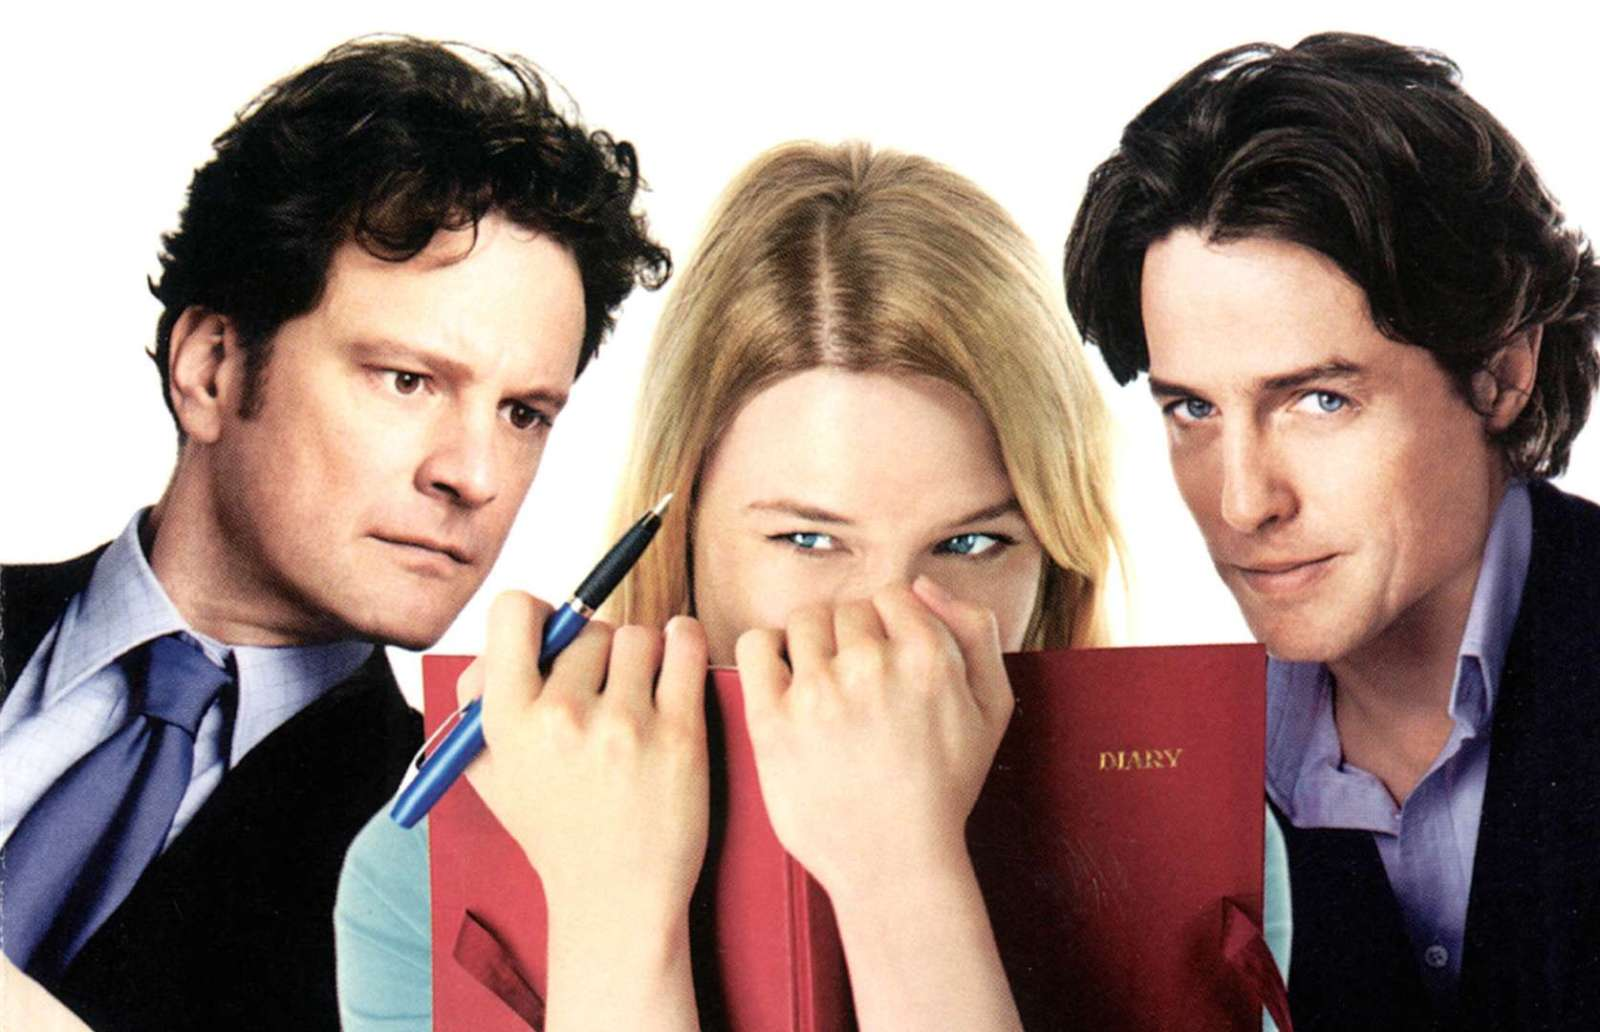 Myers-Briggs Types as Romantic Comedies